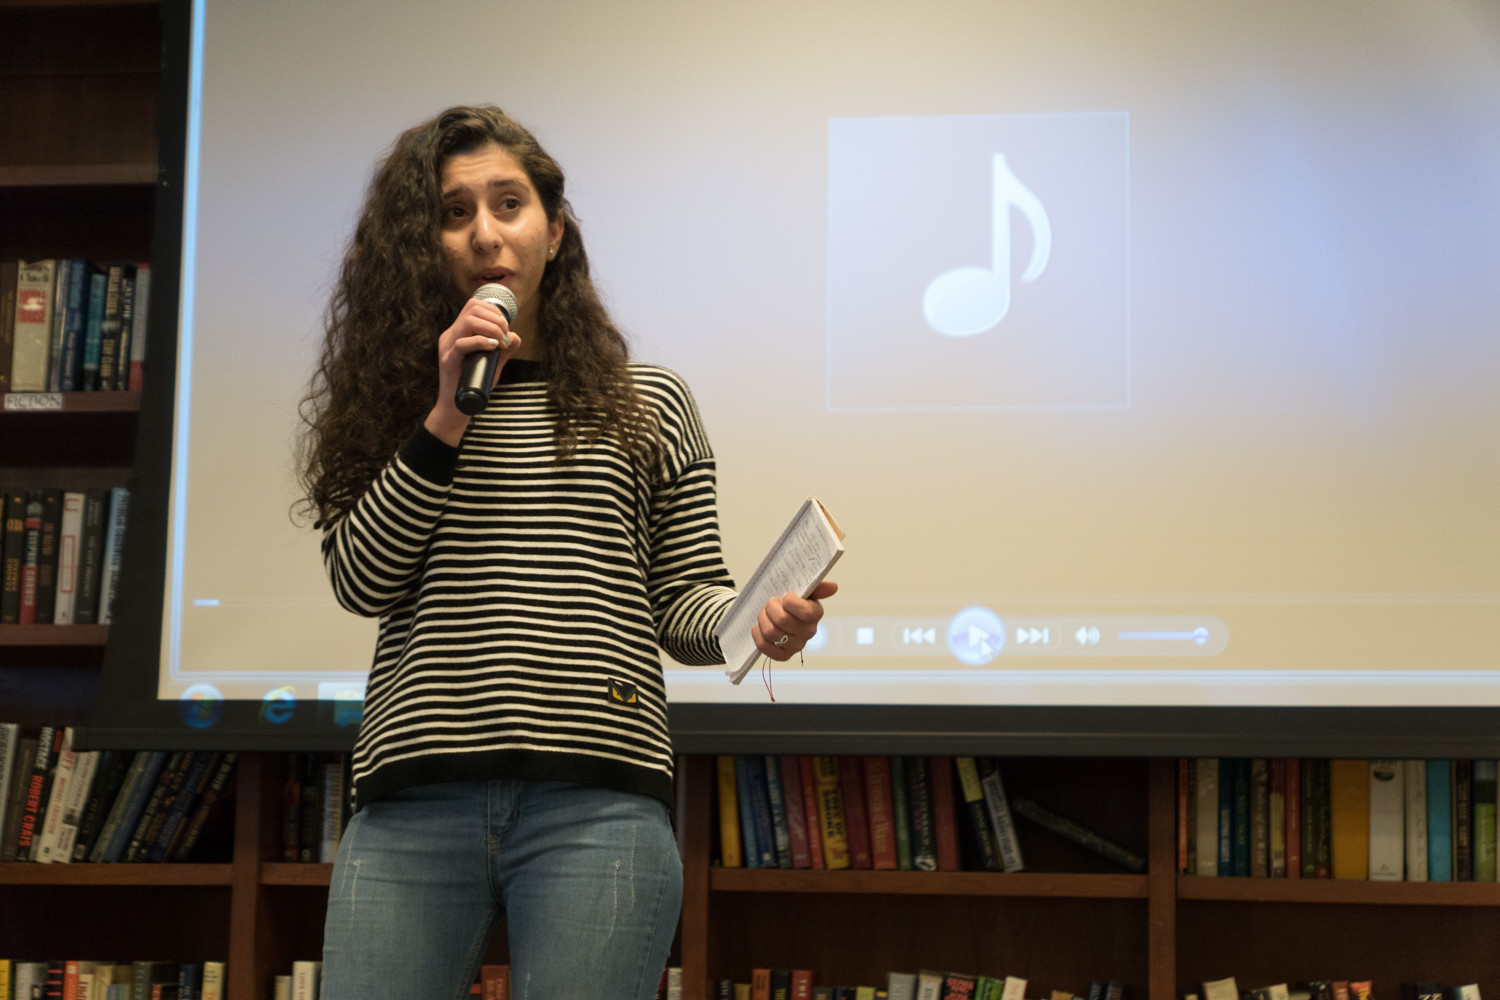 Nareh Galstyan, 16, shares her experience with the Children of Armenia Fund and as an exchange student in Baxter, Minnesota, as part of the Future Leaders Exchange Program, a U.S. government-sponsored exchange program that brings European and Eurasian students to the United States for an academic year.